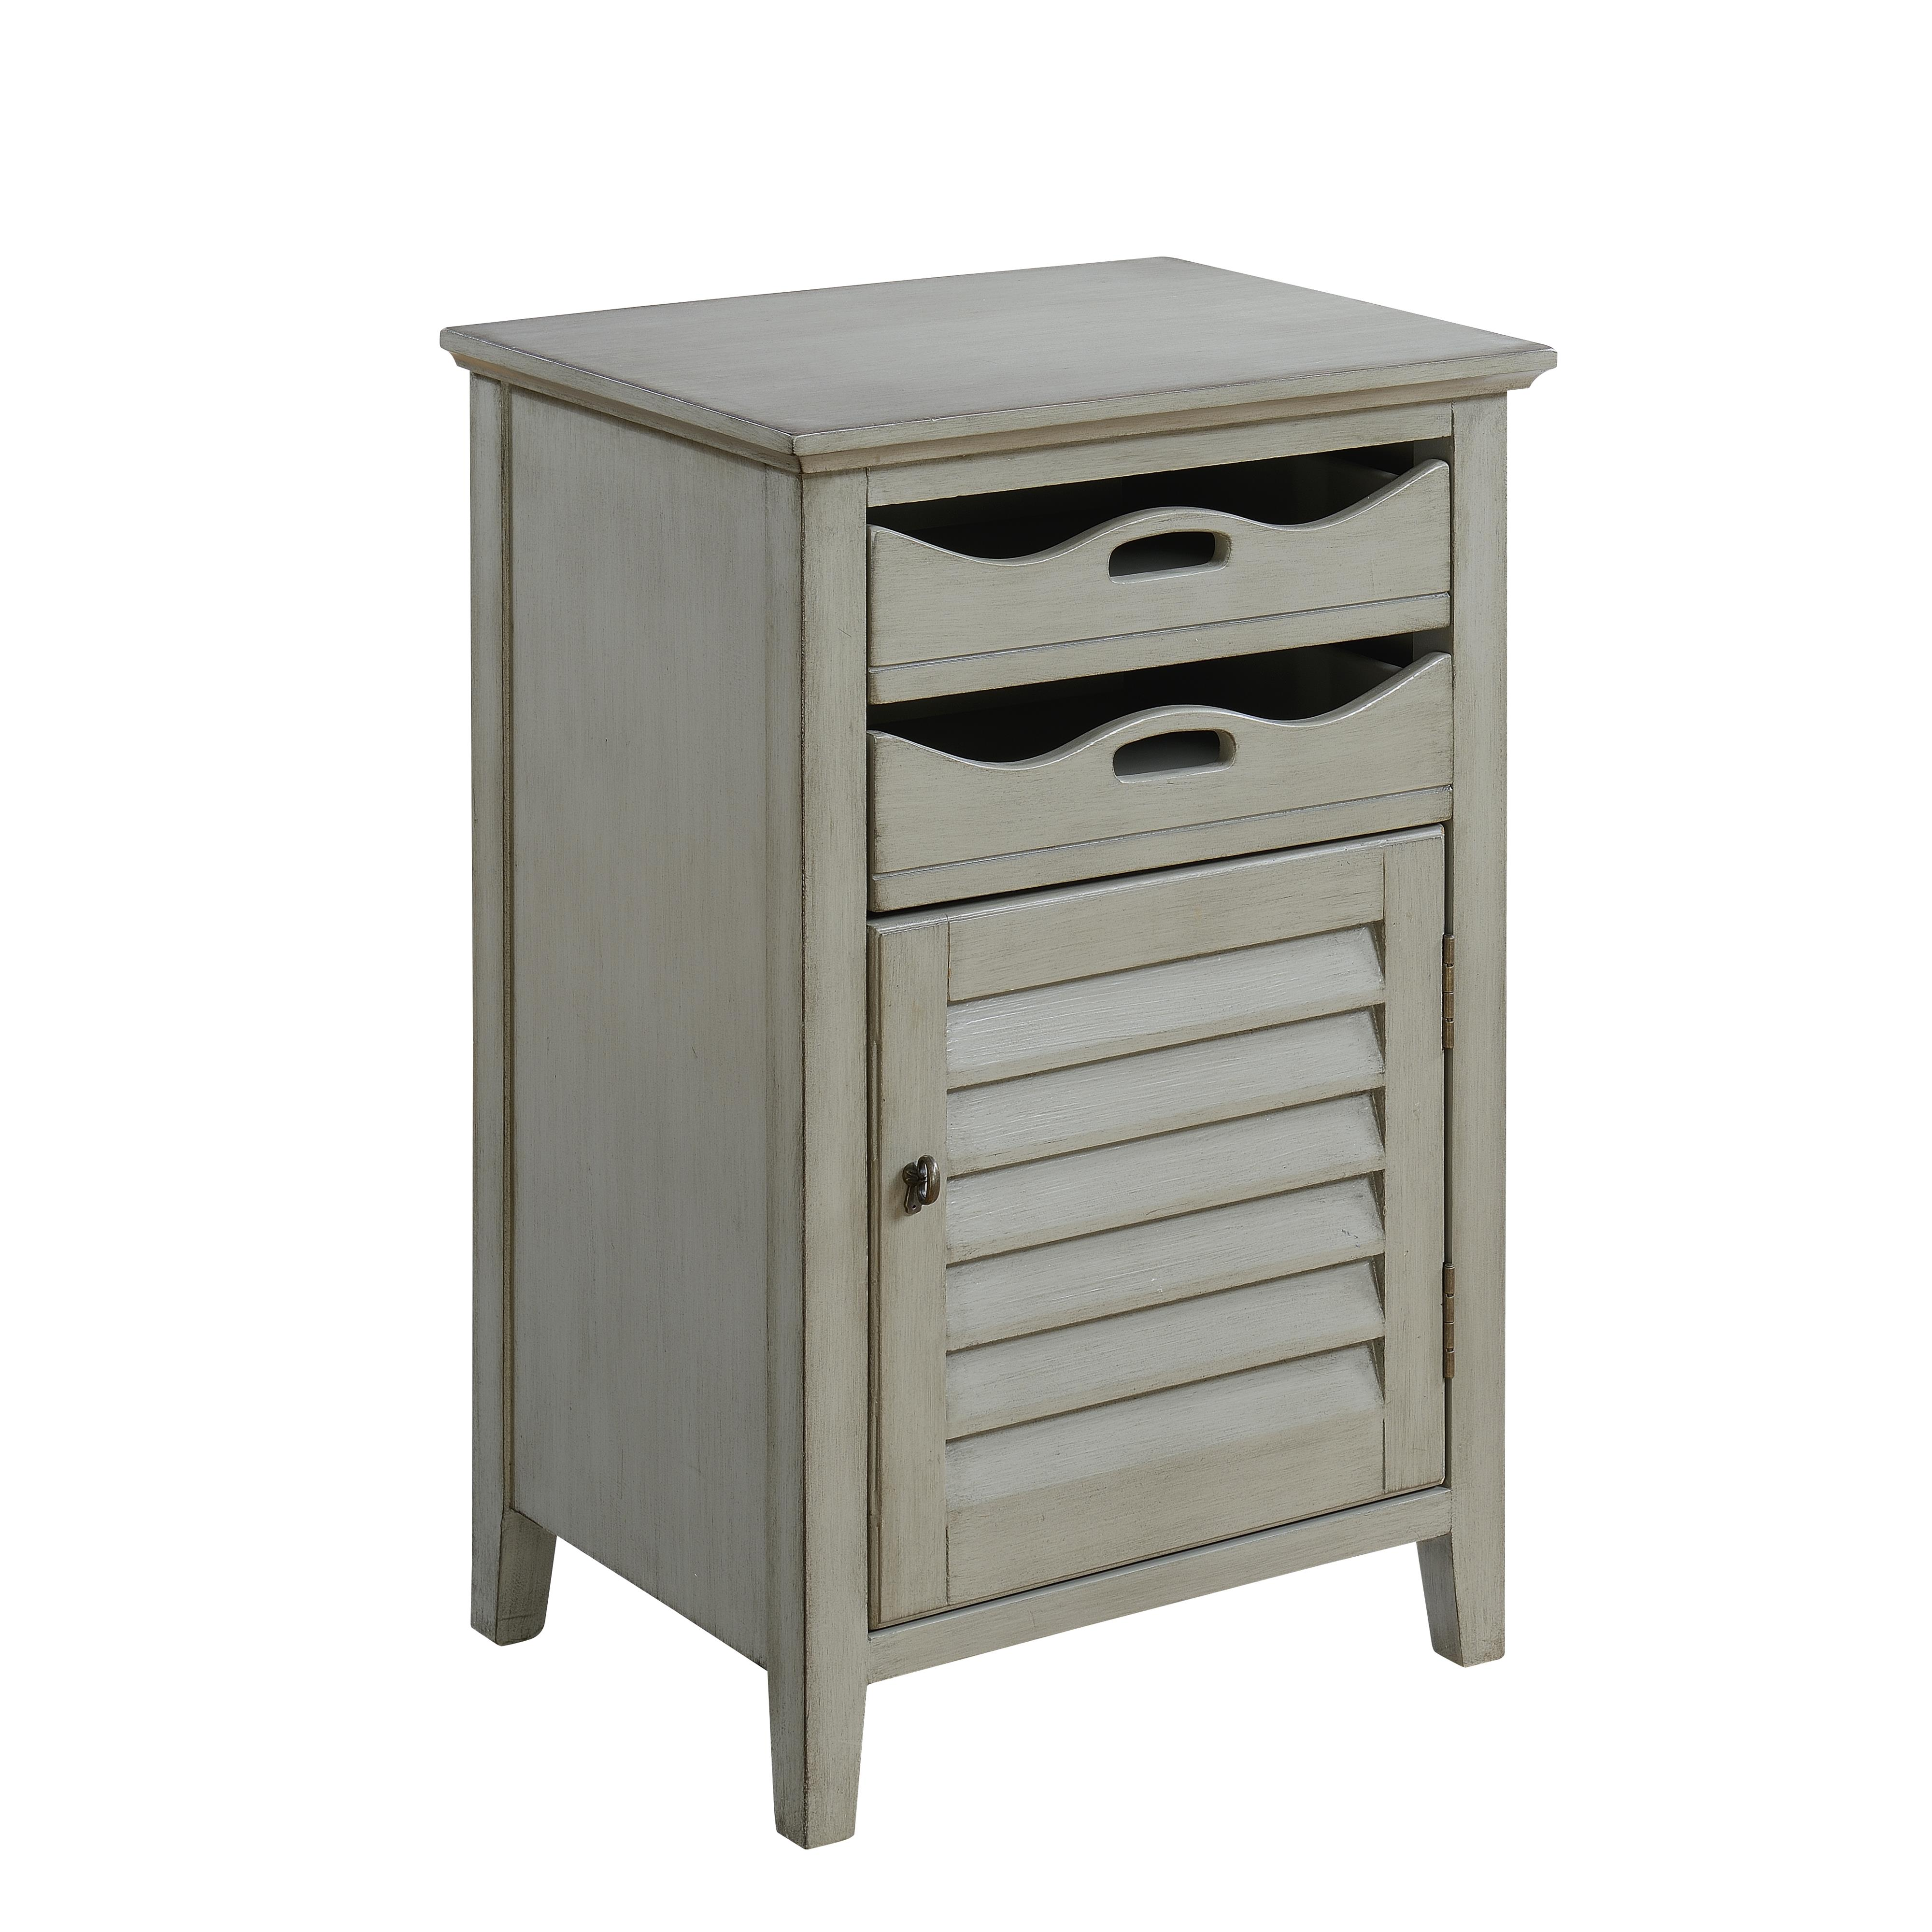 C2C Accents One Door Two Drawer Cabinet by C2C at Walker's Furniture